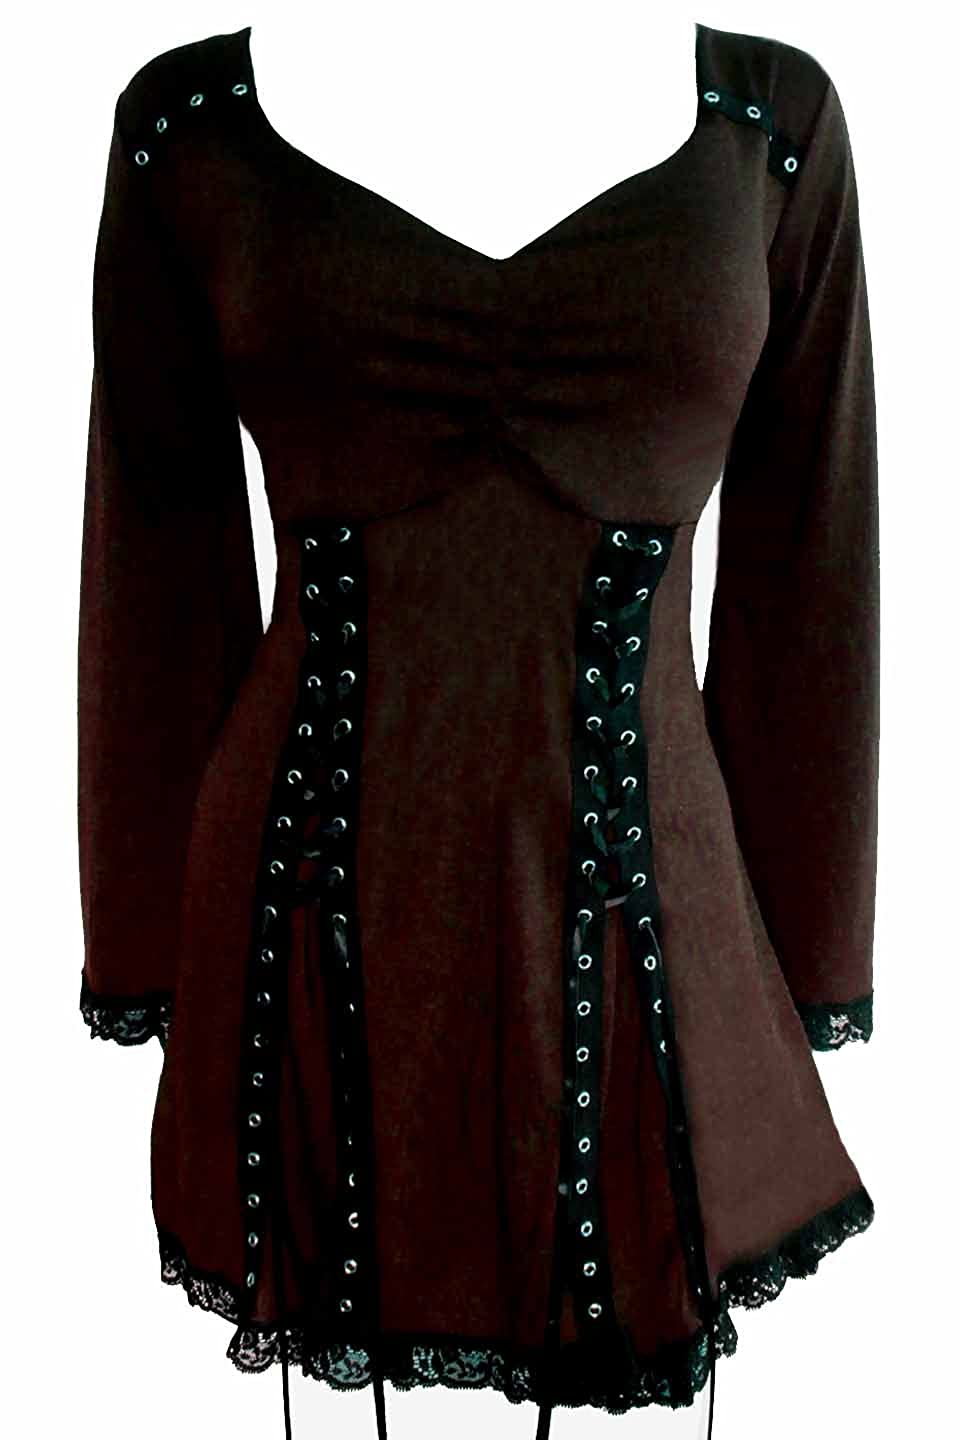 Steampunk Tops | Blouses, Shirts Dare to Wear Electra Corset Top: Gothic Punk Rock Steampunk Womens Tunic Shirt for Everyday Halloween Cosplay Concerts $59.99 AT vintagedancer.com